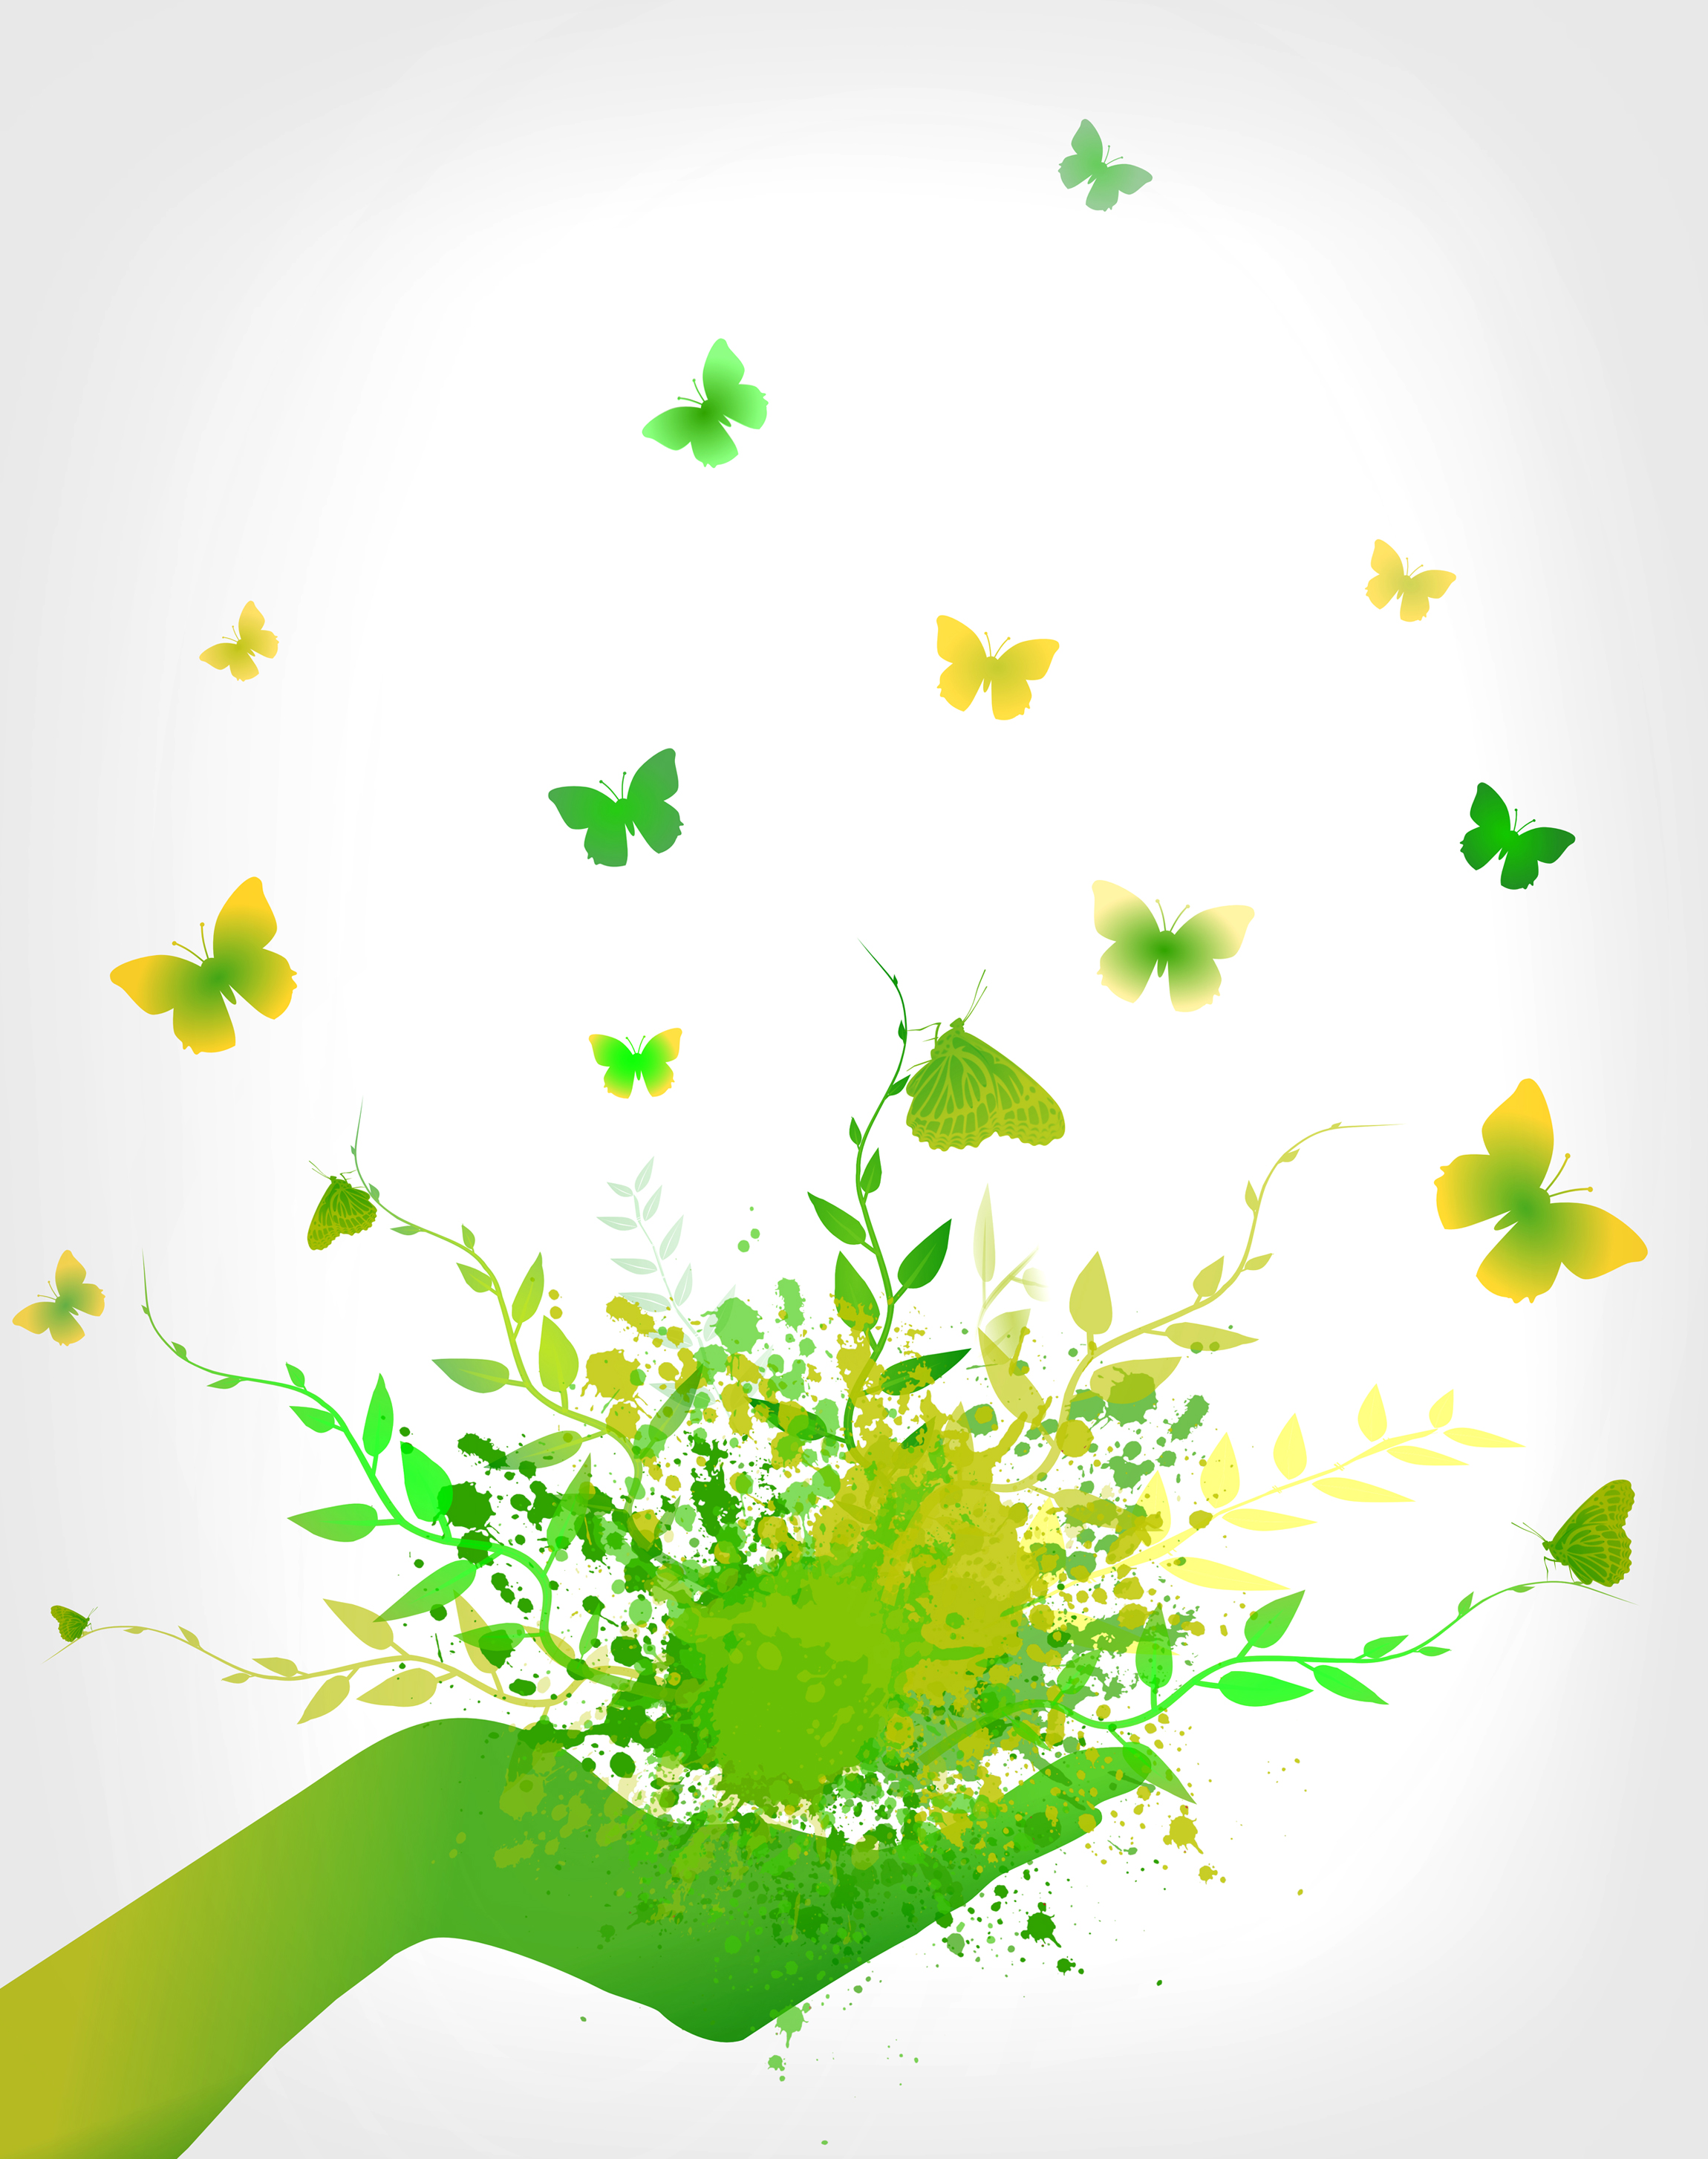 Green Concept - Splashes and Butterflies, Arm, Organic, Poster, Positive, HQ Photo